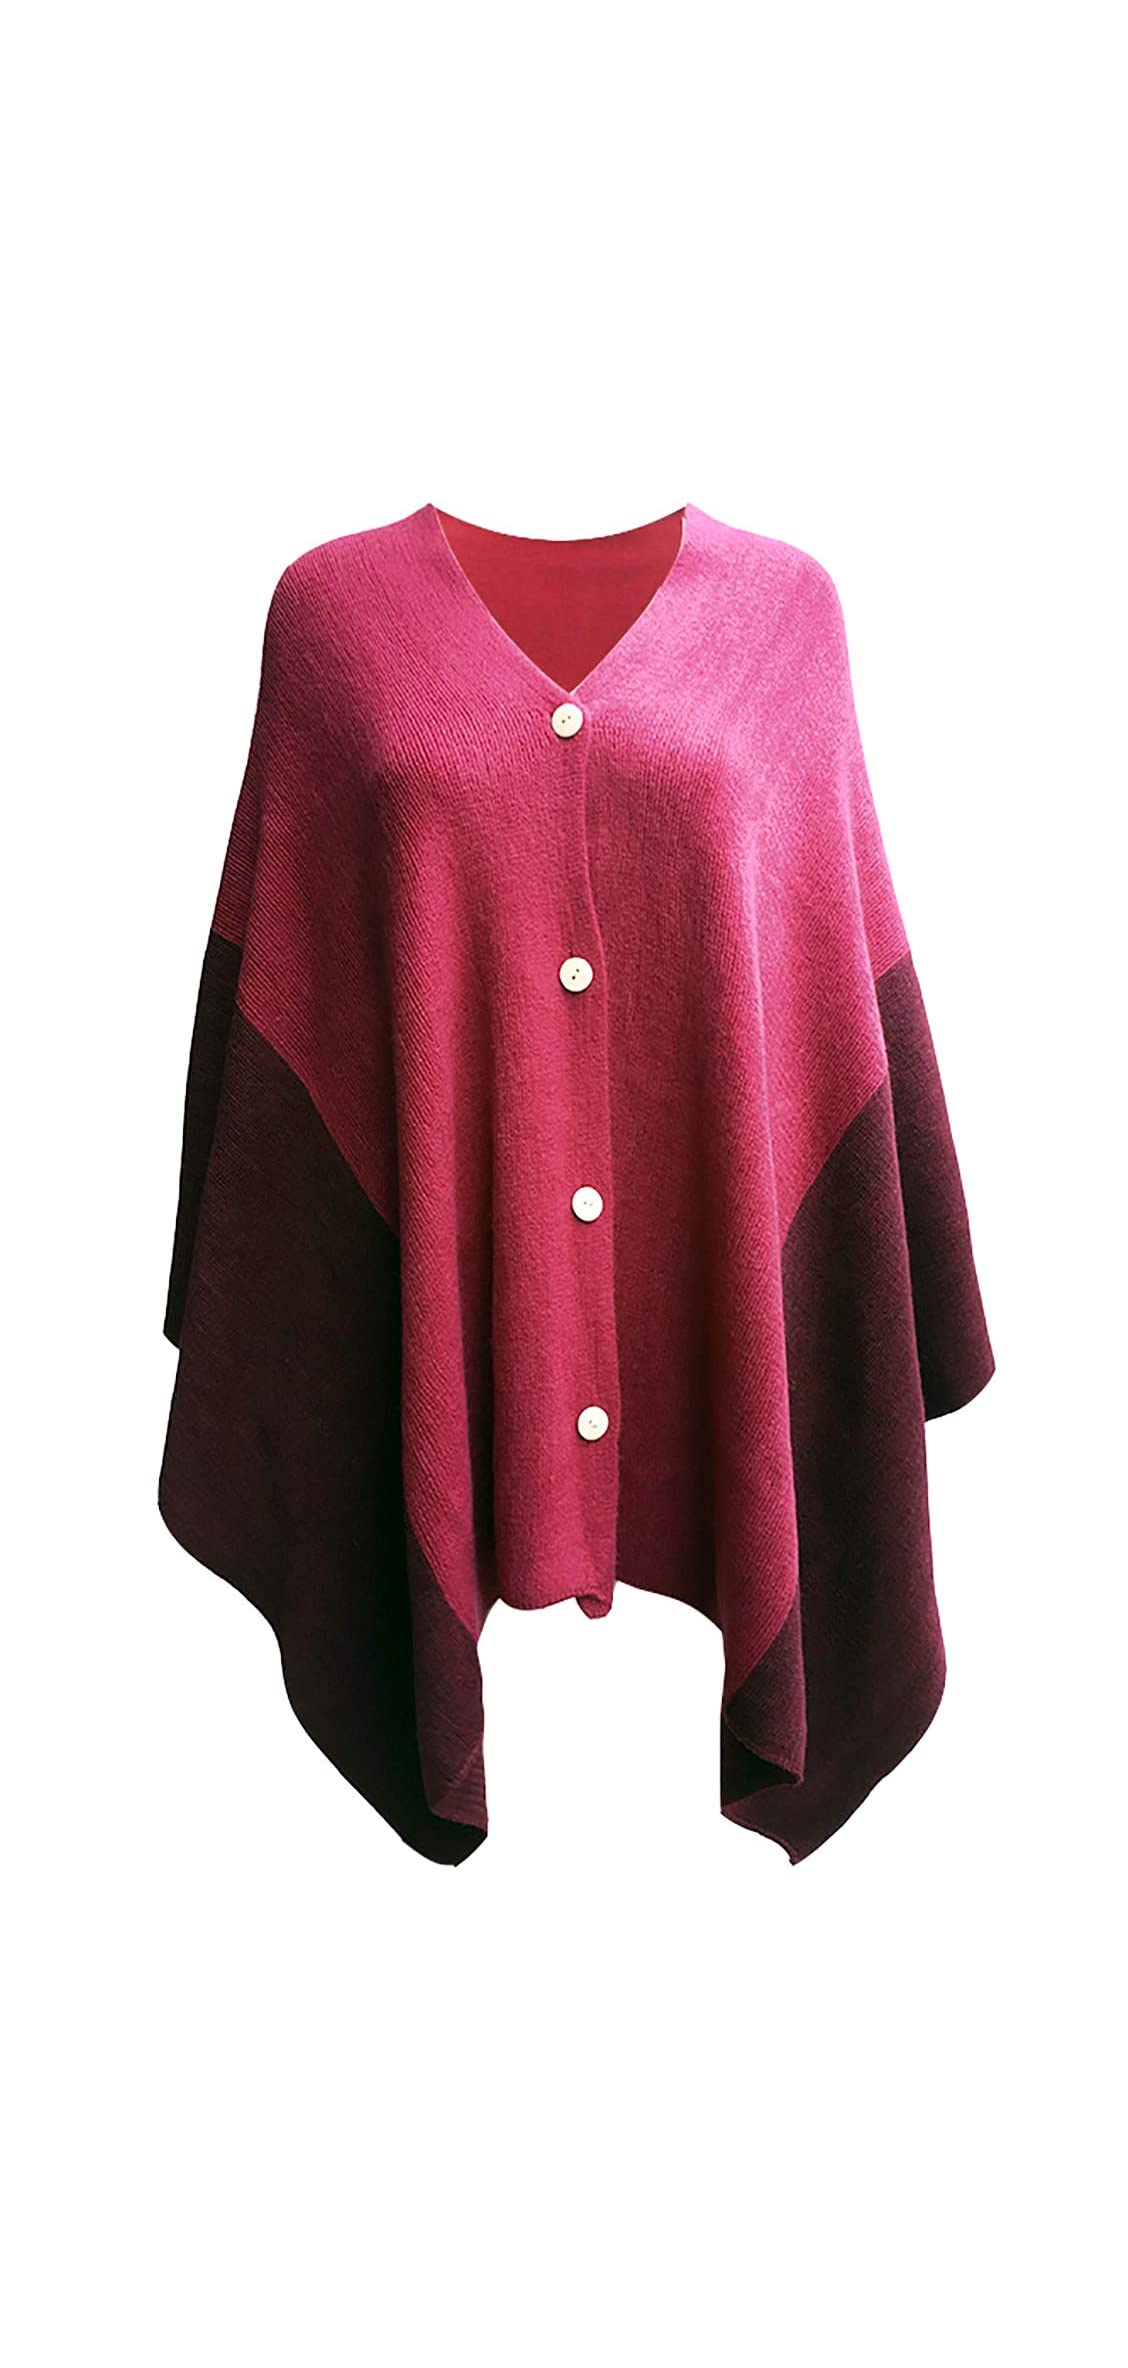 Women's Vintage Knitted Poncho Shawl Cape Button Cardigan Scarf